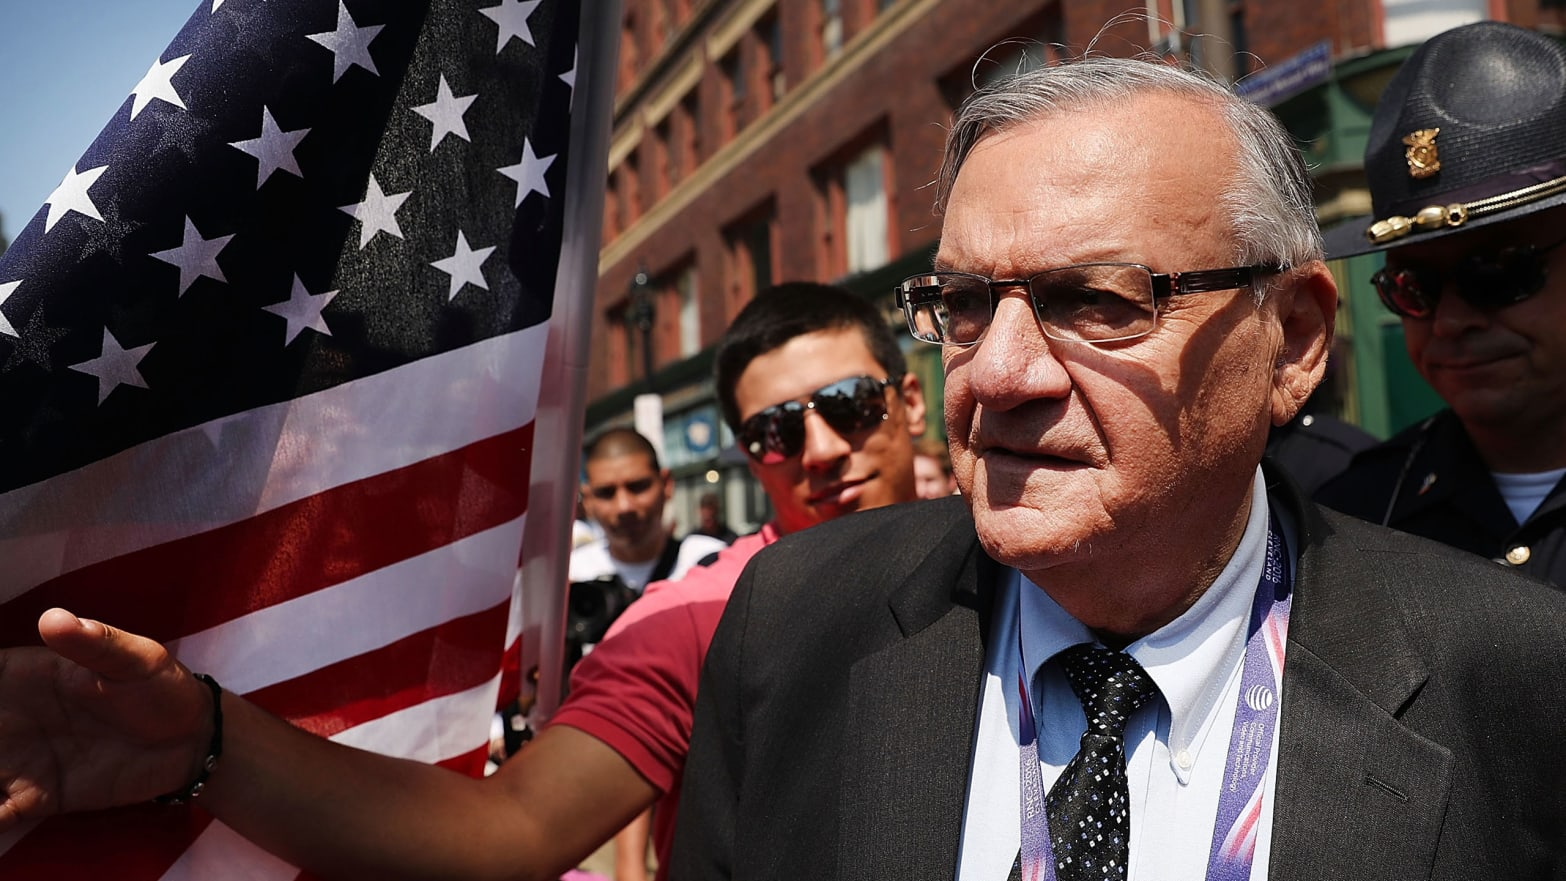 Maricopa County Sheriff Joe Arpaio is surrounded by protesters and members of the media at the the site of the Republican National Convention (RNC) in downtown Cleveland on the second day of the convention.